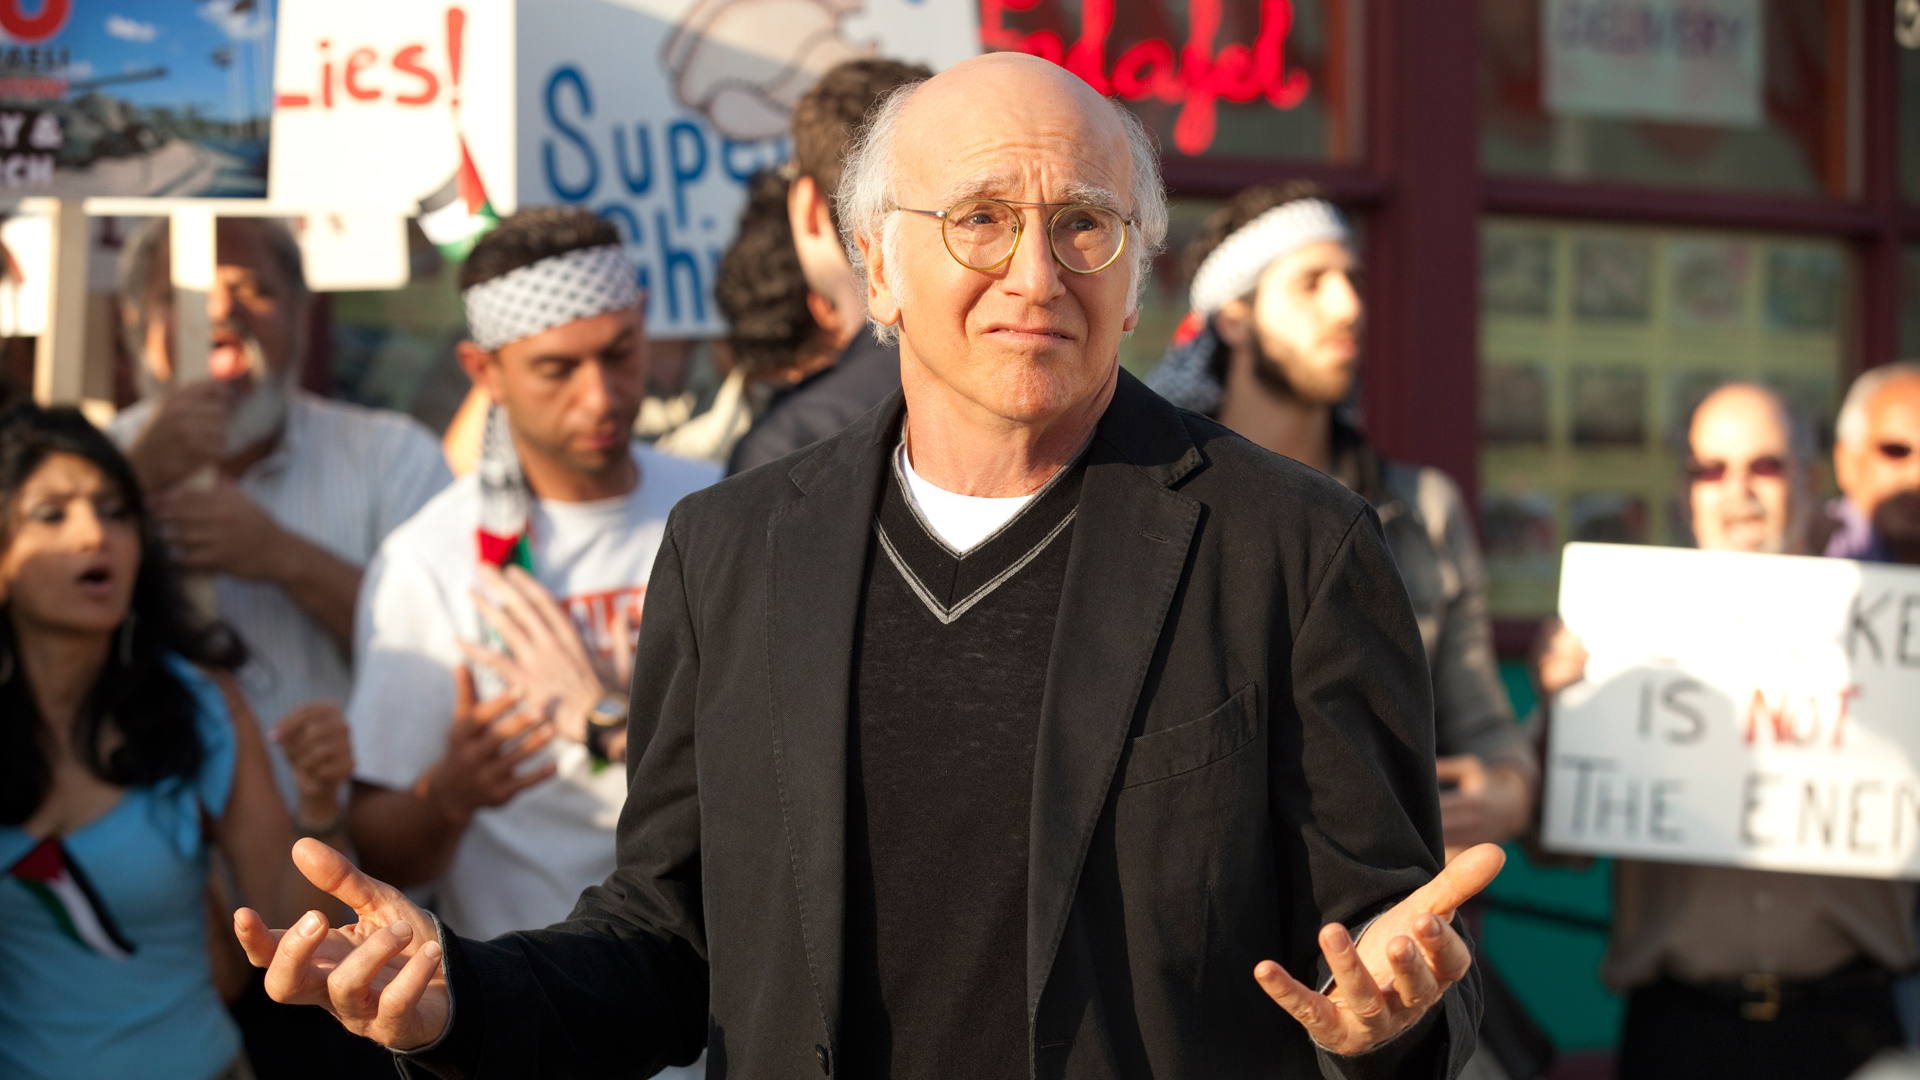 Larry david, hbo